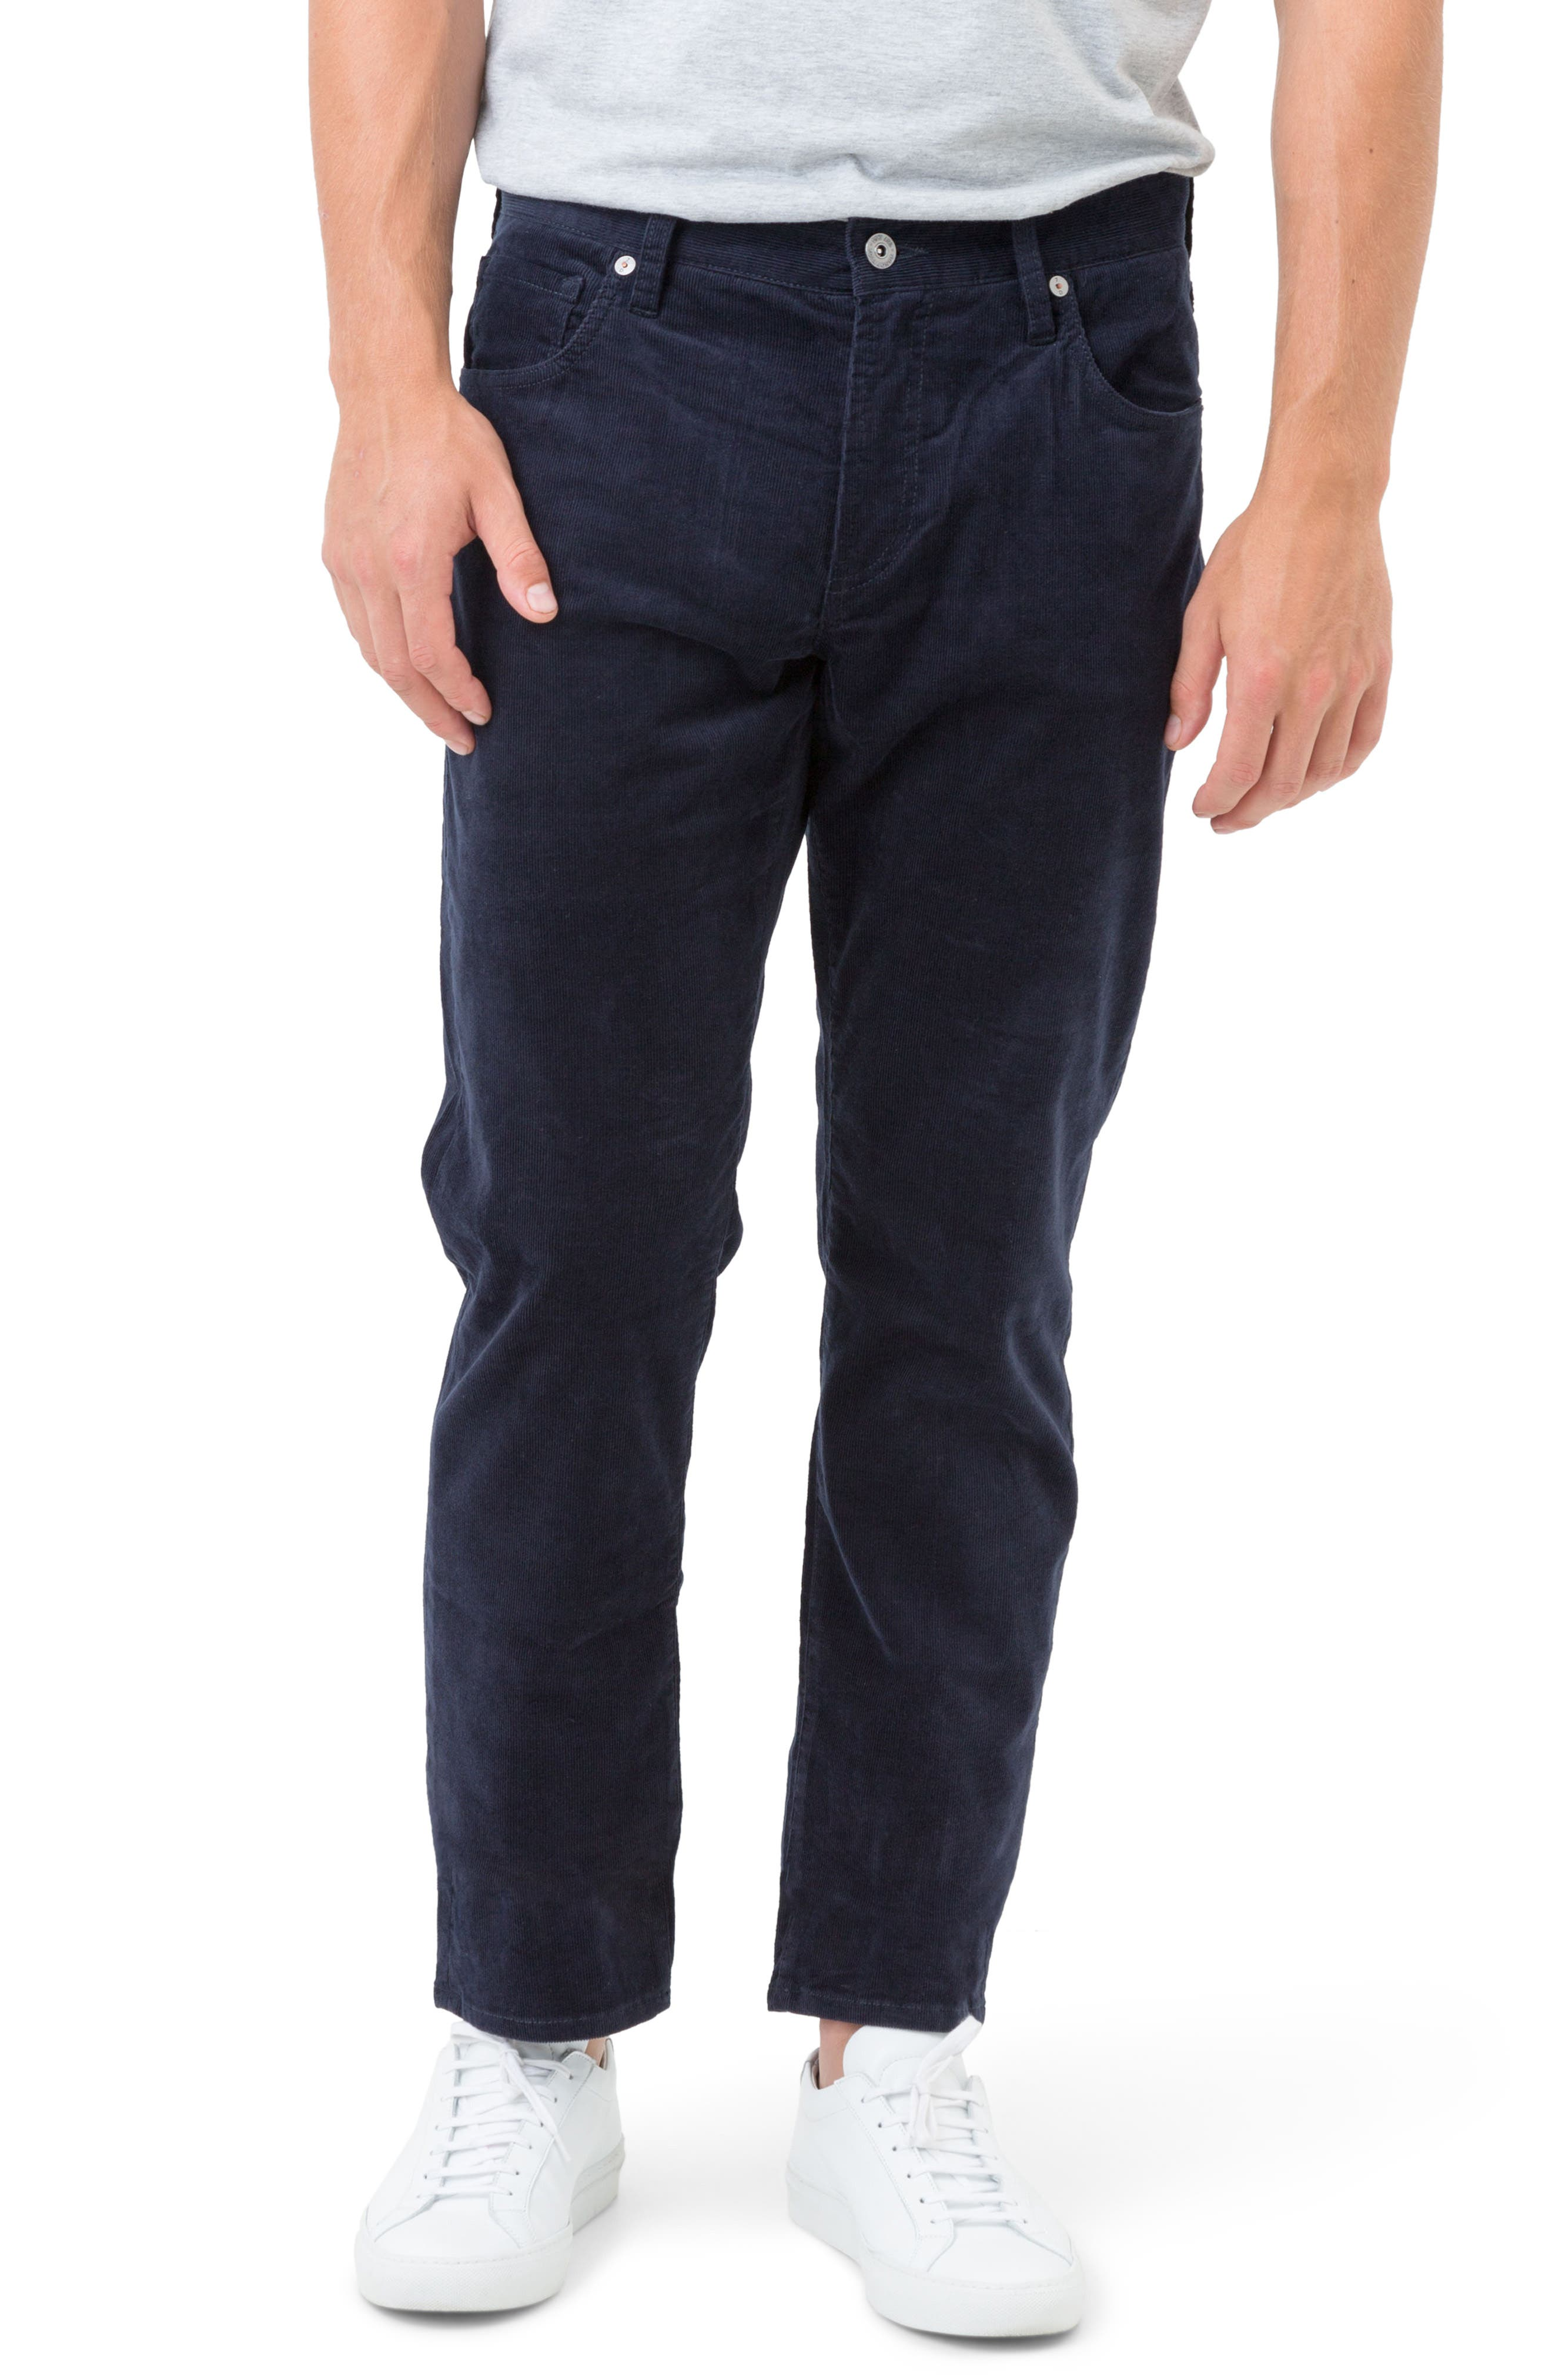 Courtland Slim Fit Corduroy Pants,                             Main thumbnail 1, color,                             Navy